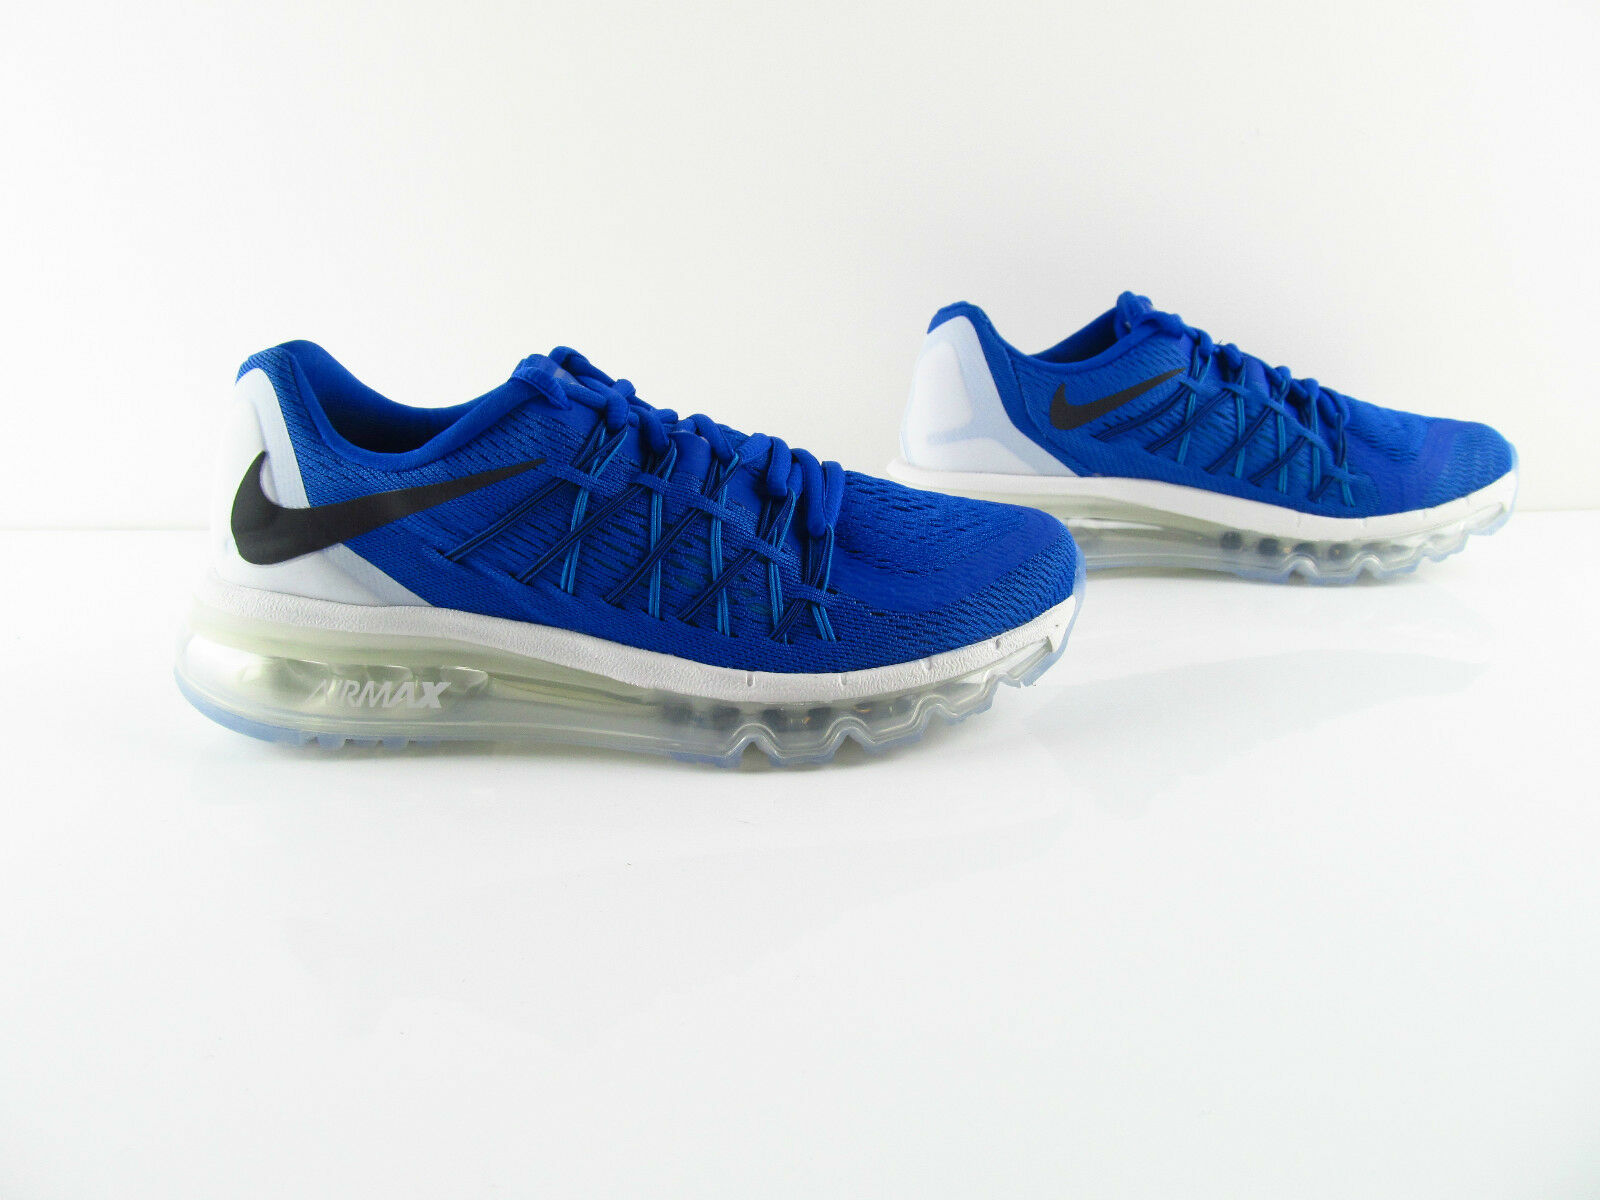 Nike Air Max 2015 Game Royal 90 Blue White Running Sneaker Schuhe 705457 402